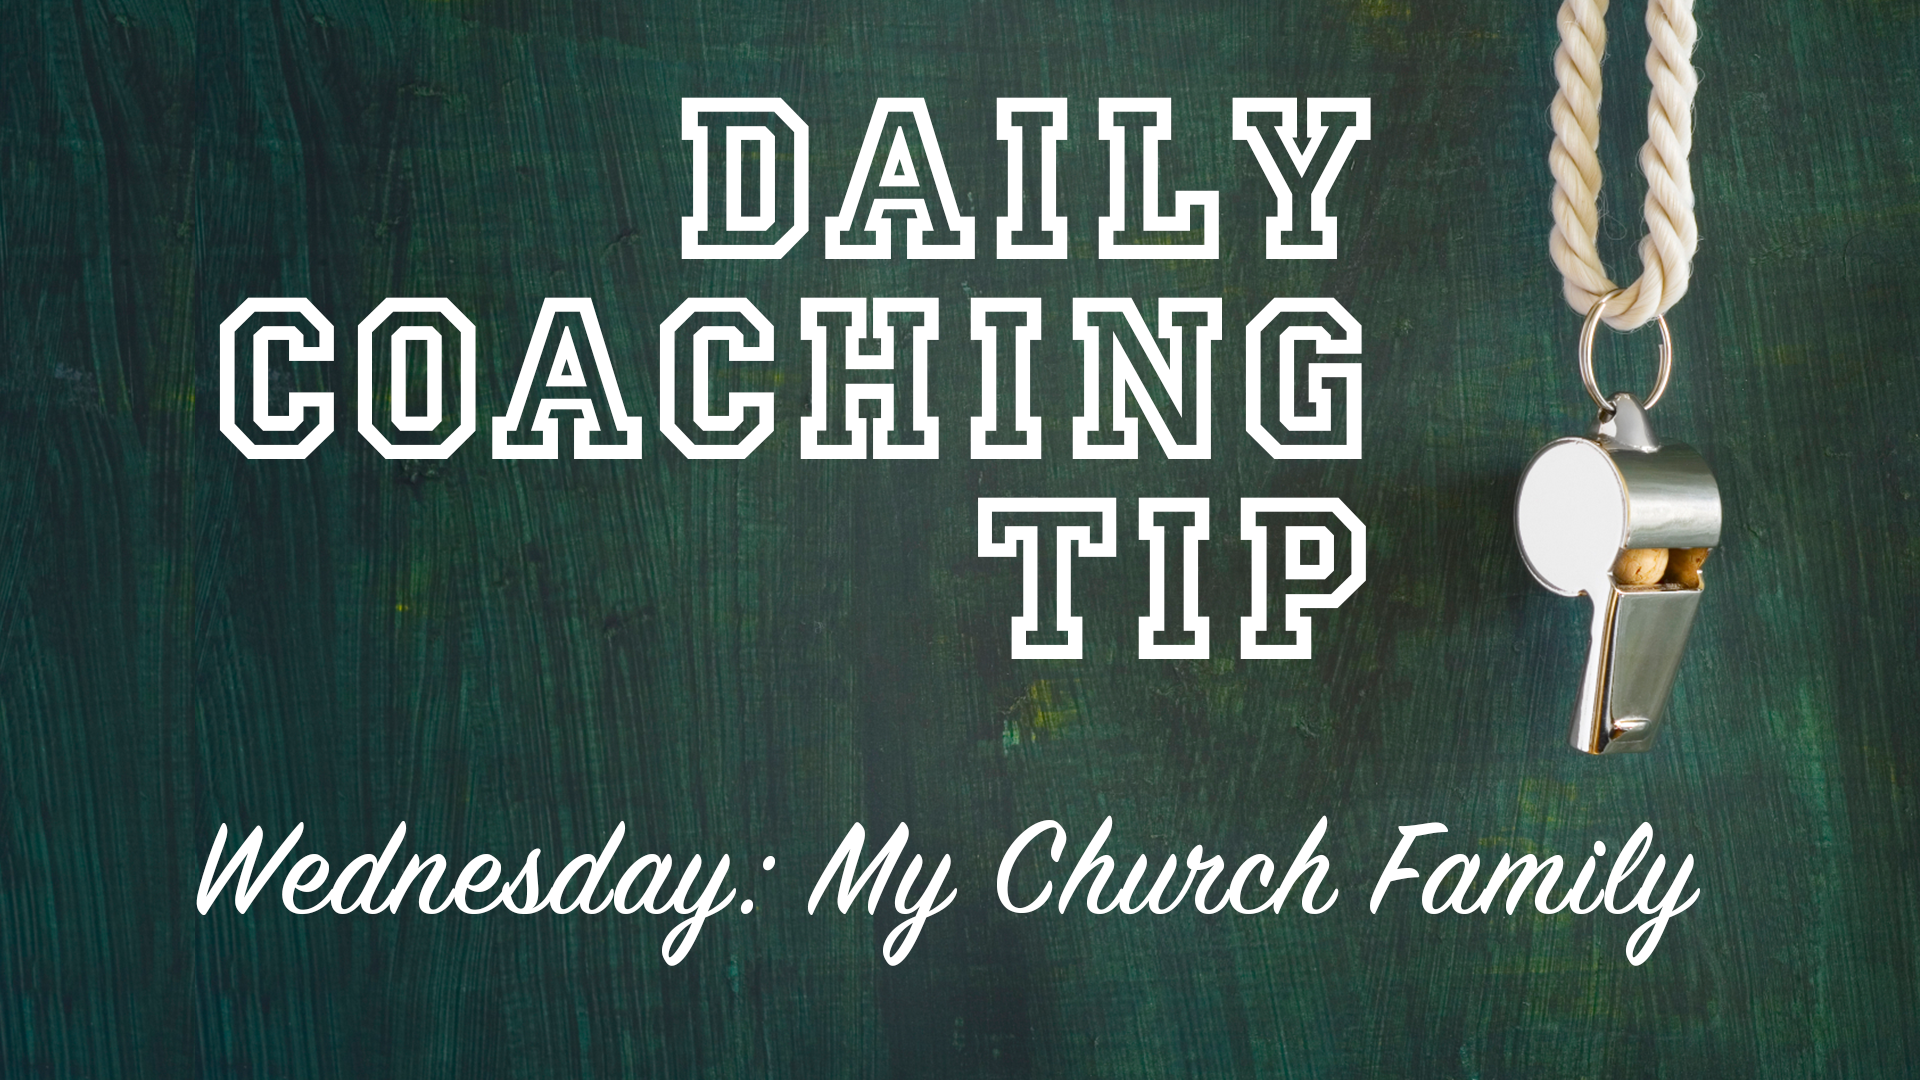 Daily Coaching Tip, Wednesday, March 16, 2016